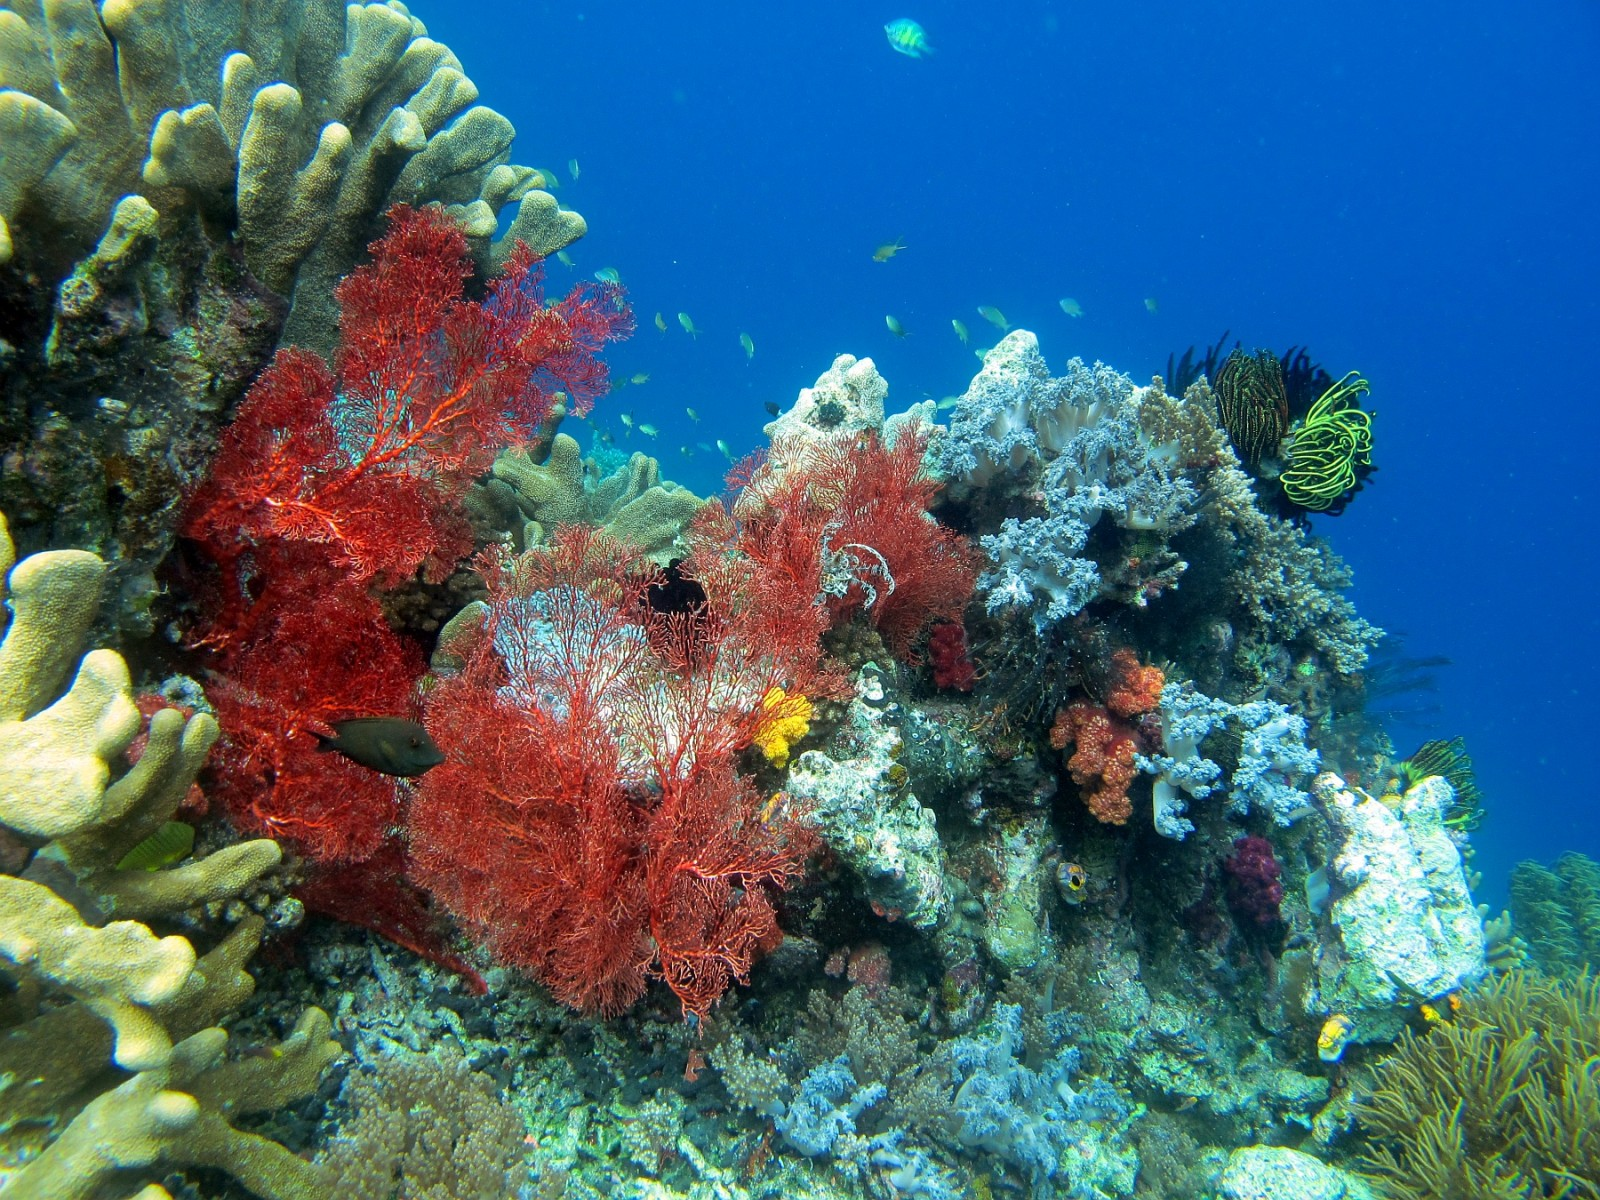 Soft corals like this red gorgonian sea fan flourish in Raja Ampat's swift currents. PHOTO by SUE HACKING